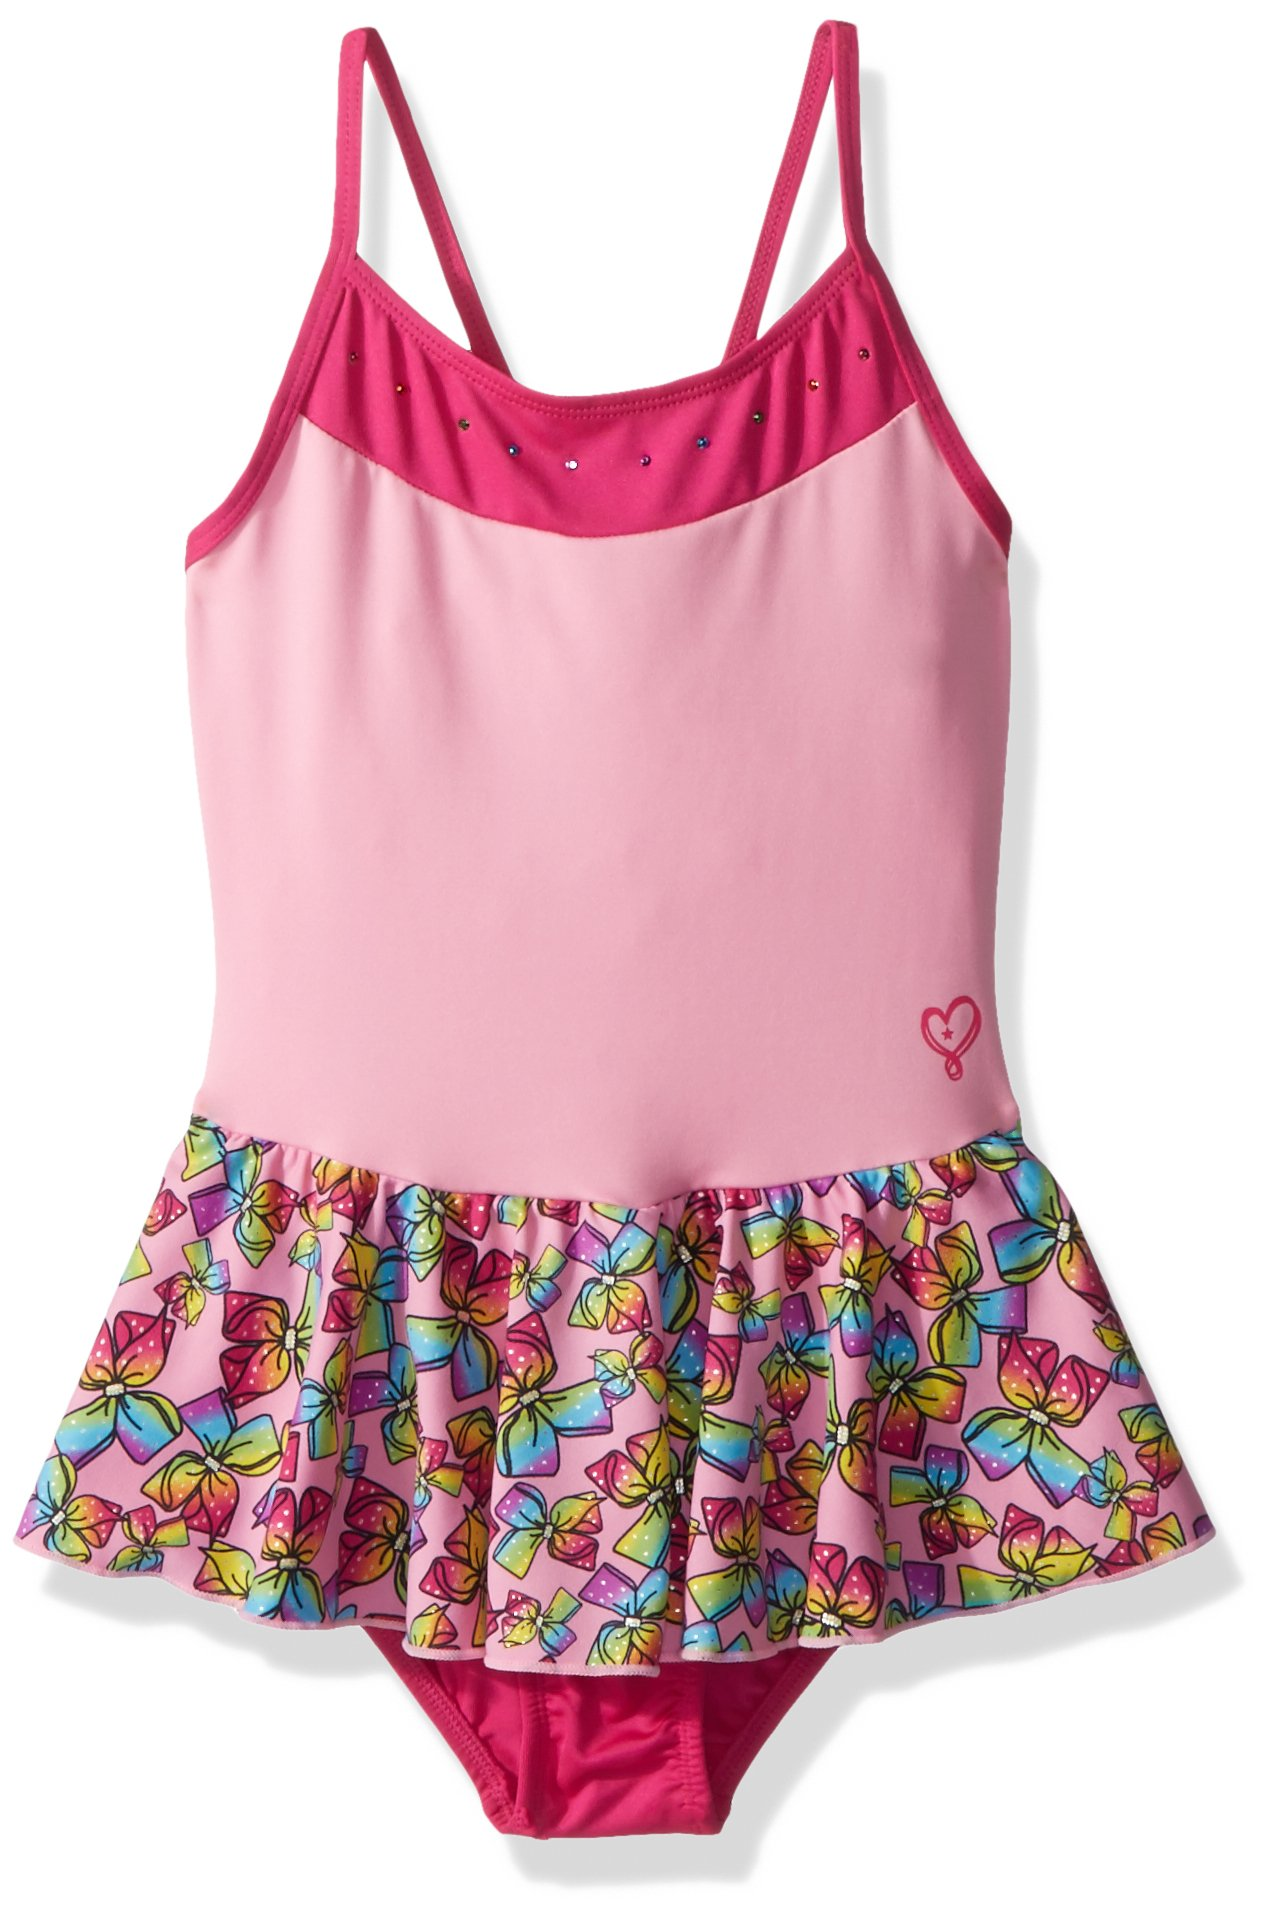 573ad3096a4e0 Get Quotations · Jojo Siwa By Danskin Big Girls' Rainbow Bows Dance Dress